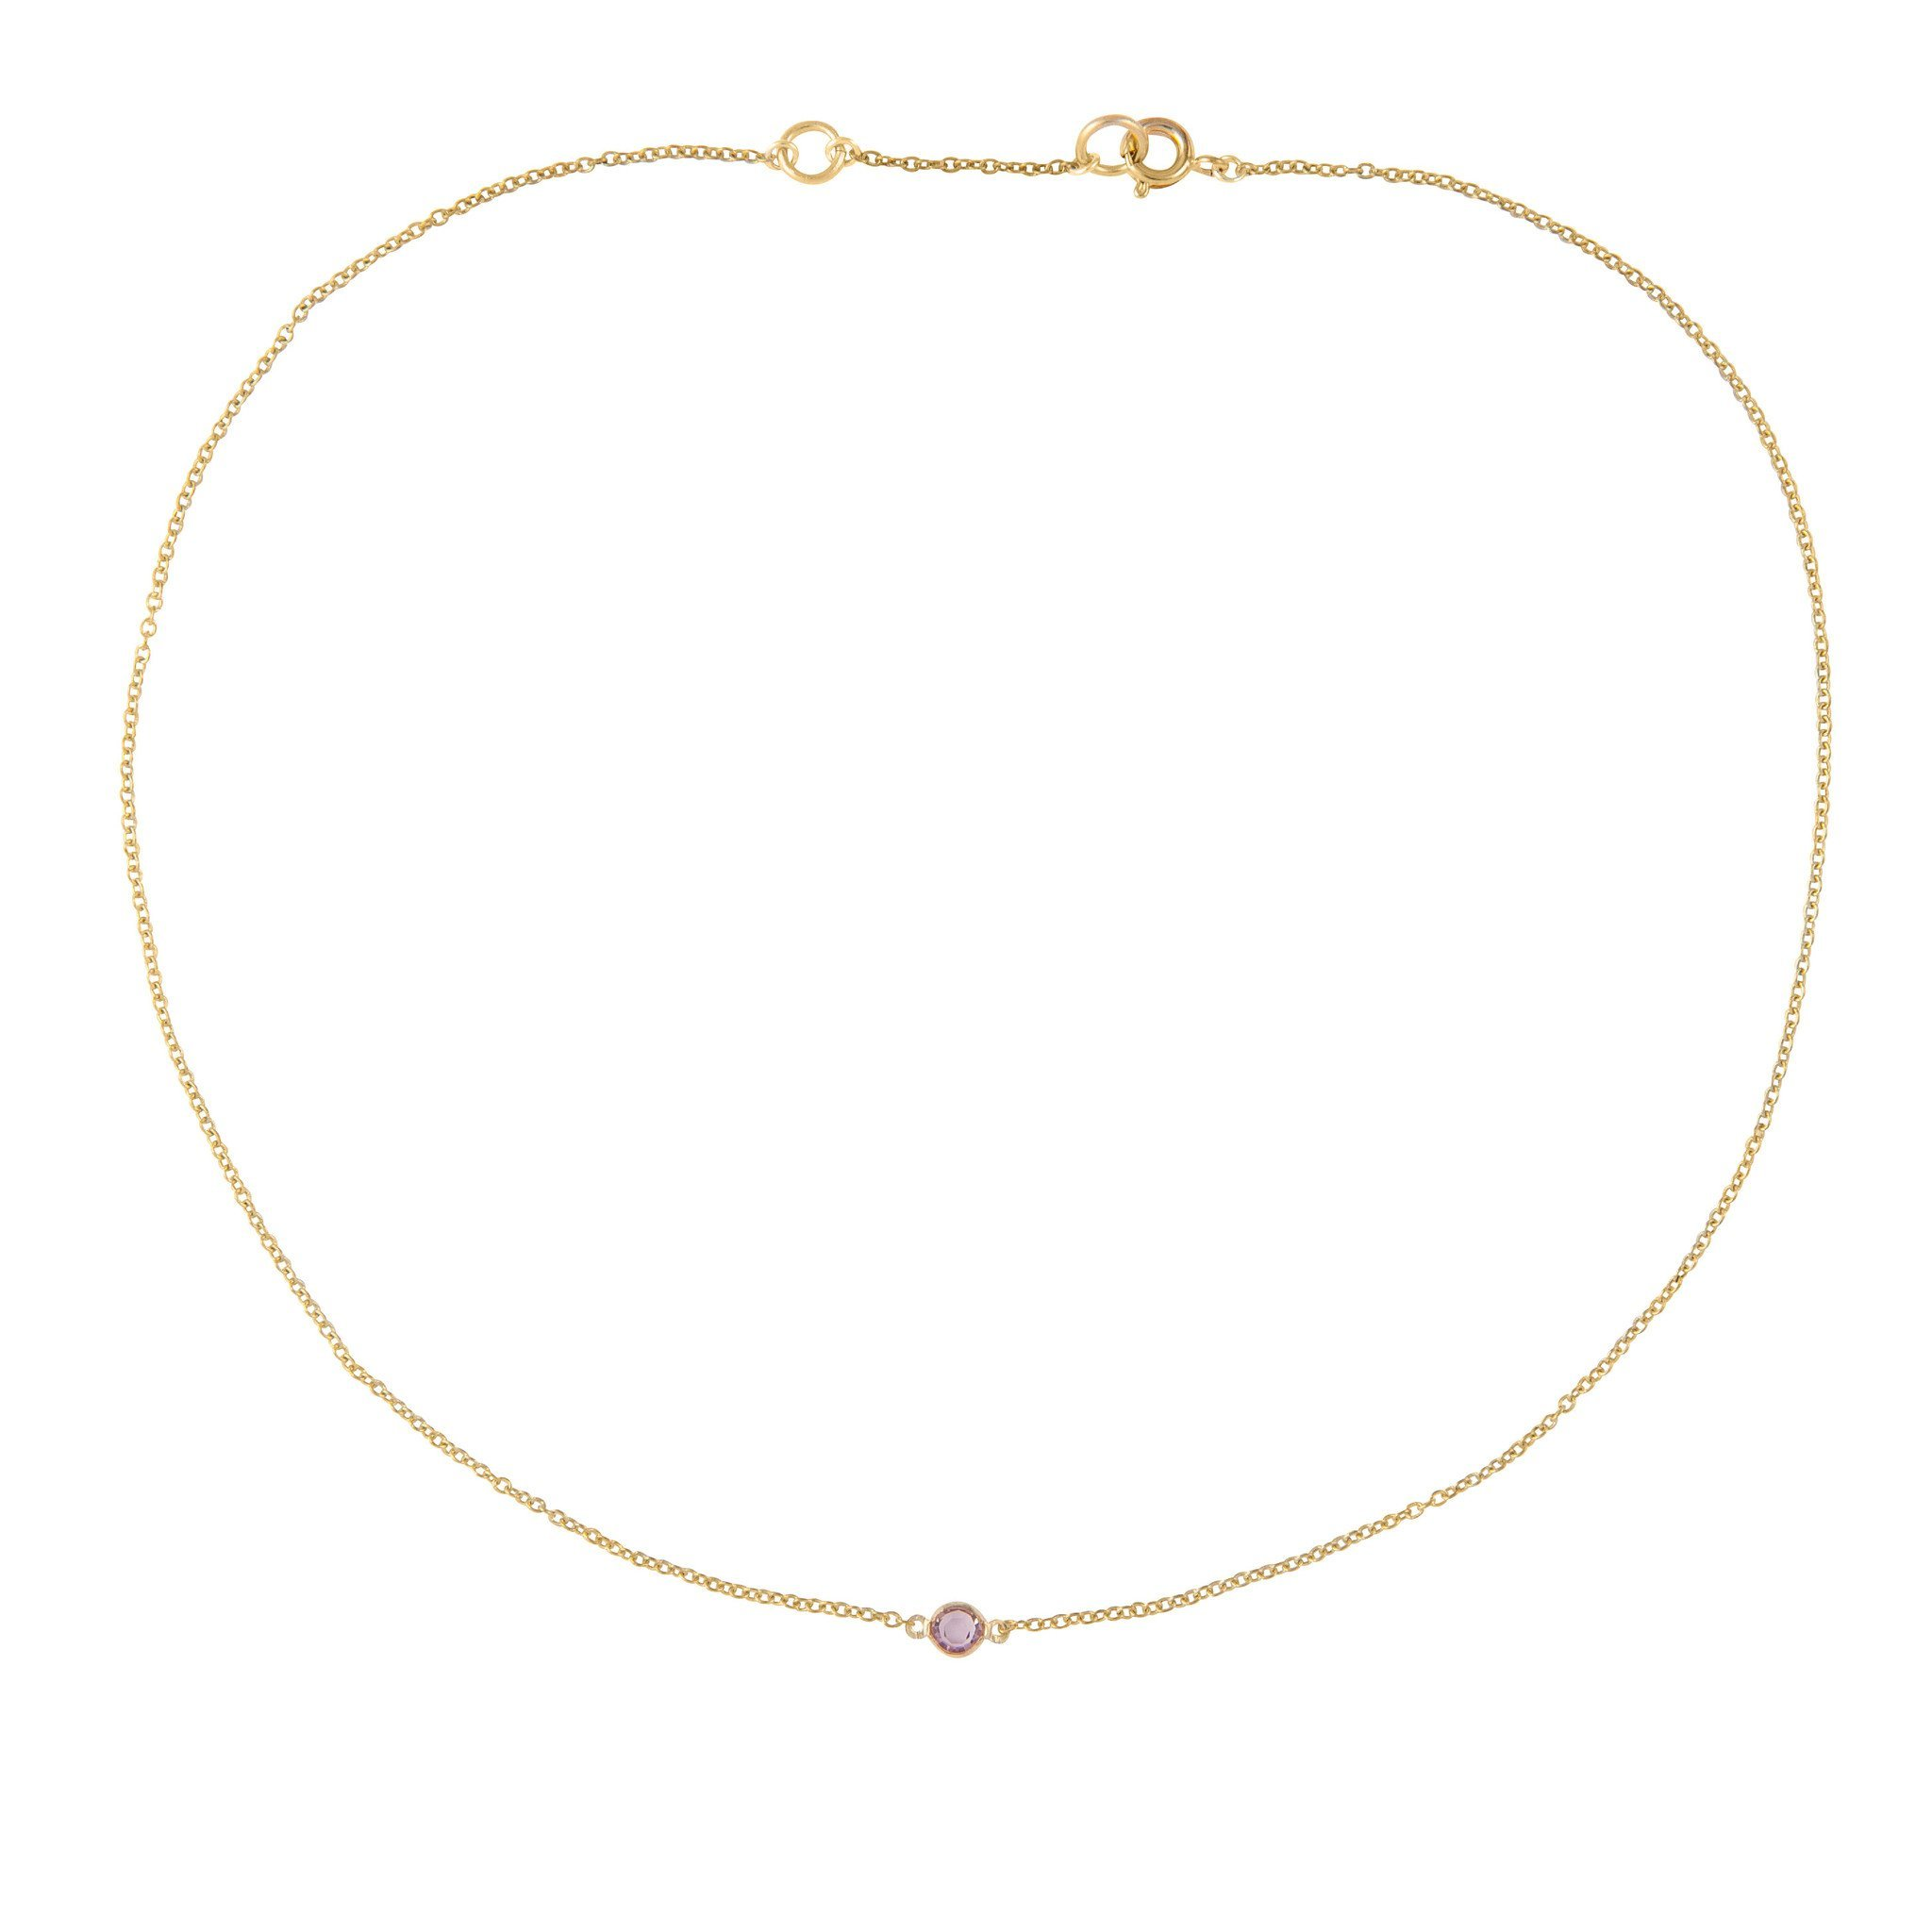 SUSAN CAPLAN CONTEMPORARY 18CT GOLD PLATED SINGLE SWAROVSKI CRYSTAL NECKLACE